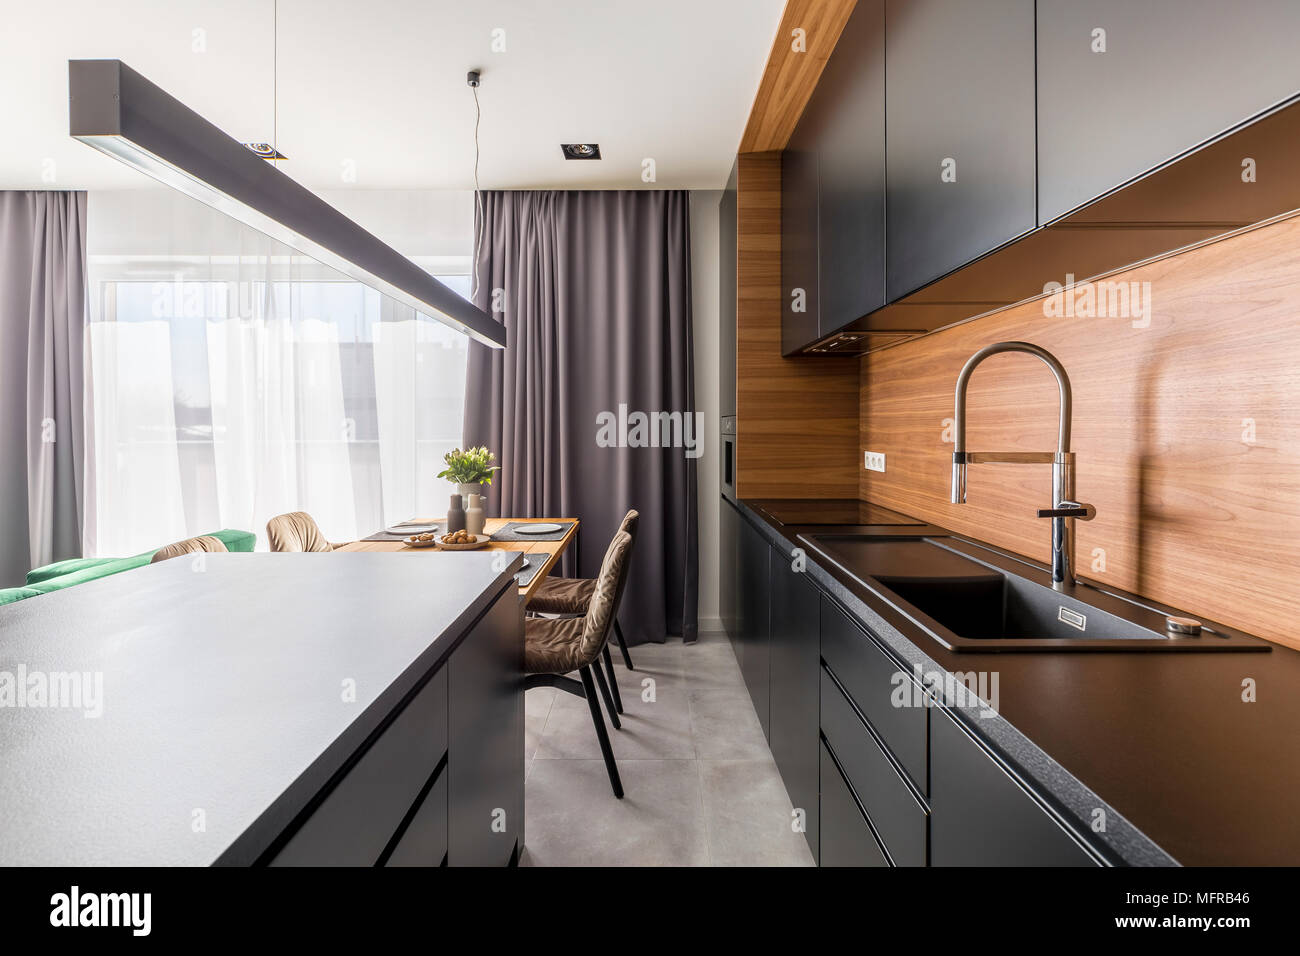 Kitchen interior with black cabinets, steel tap and wooden table in dining area - Stock Image